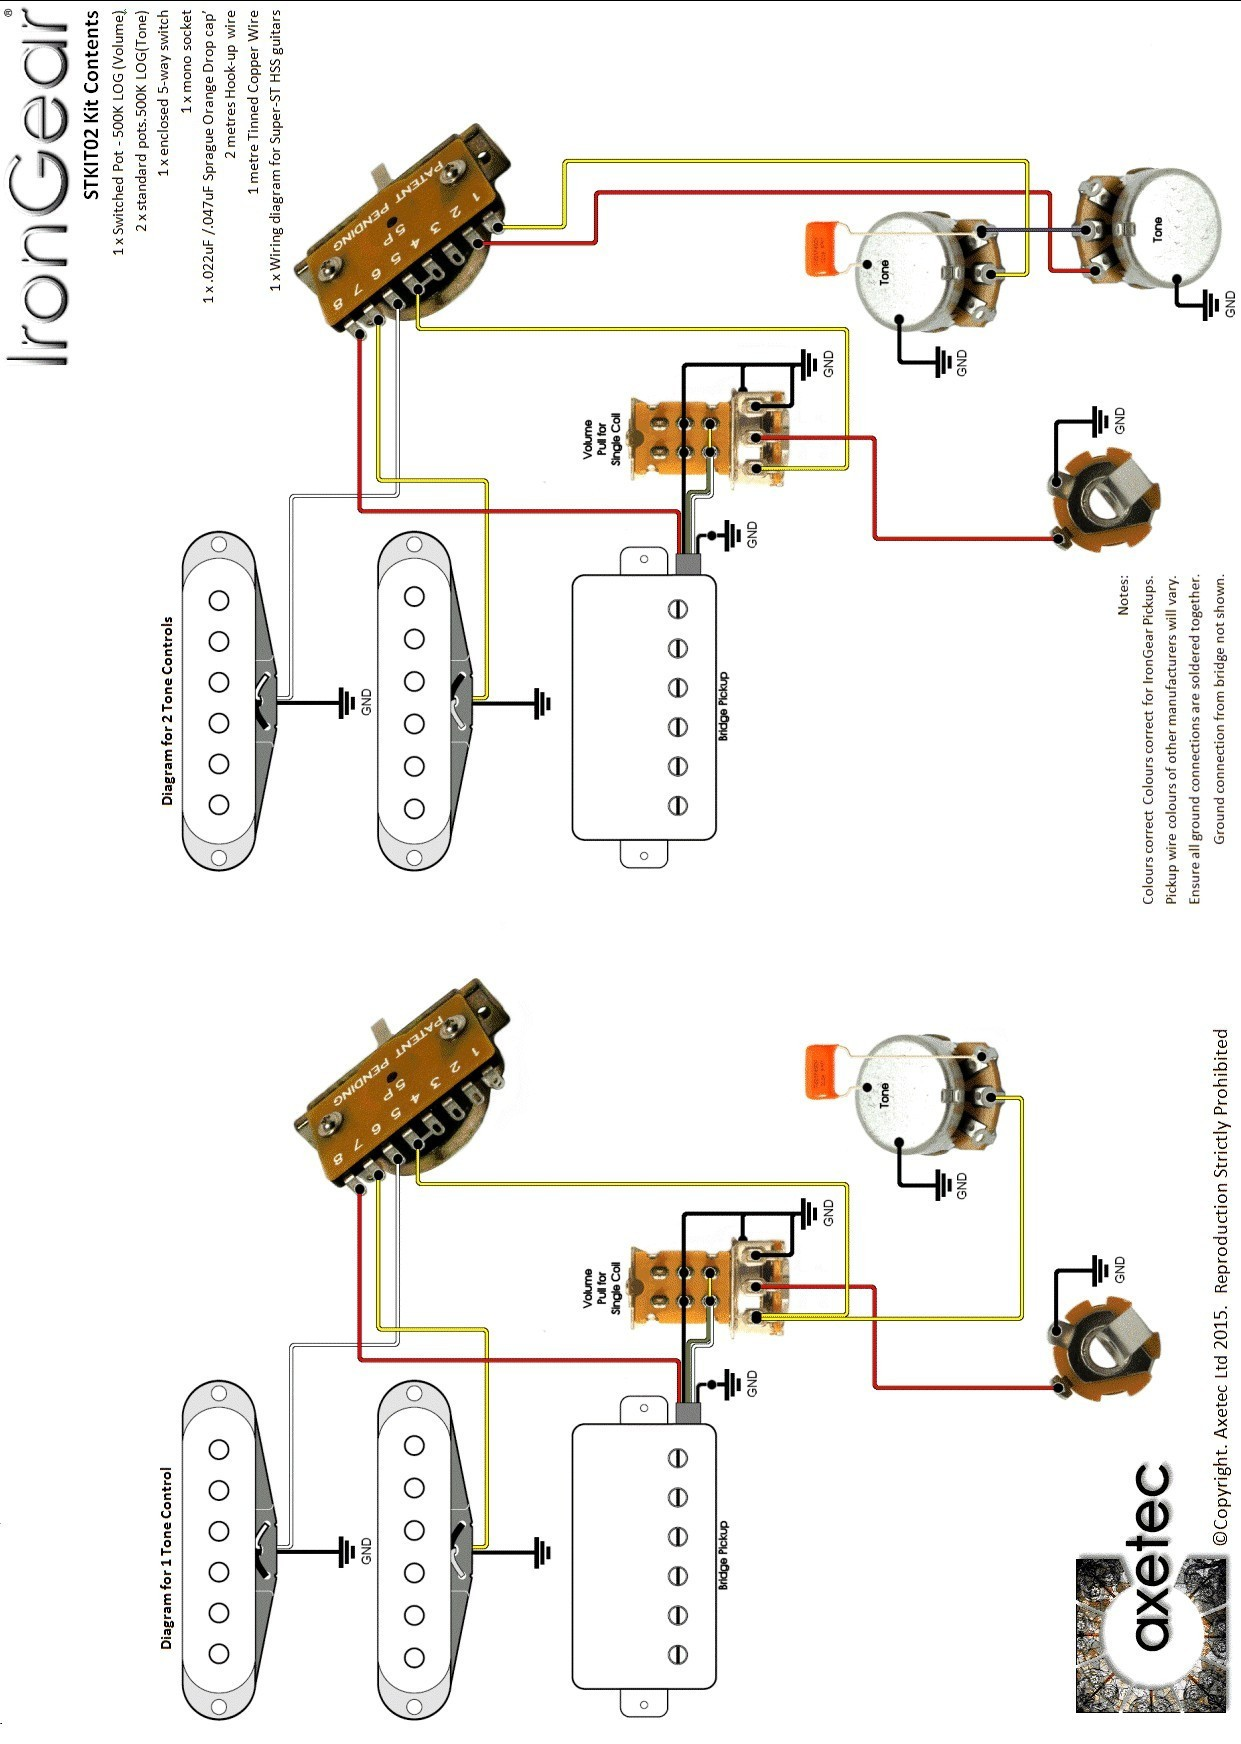 Jackson Guitar Wiring Diagram Wiring Diagram Image Japan Strat Wiring  Diagrams Jackson Guitar Wiring Diagrams